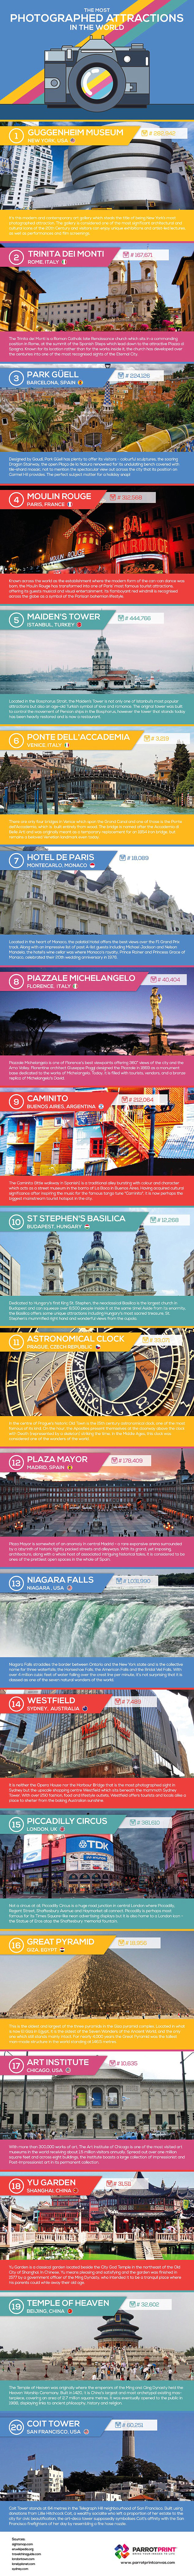 The Most Photographed Attractions In The World Infographic